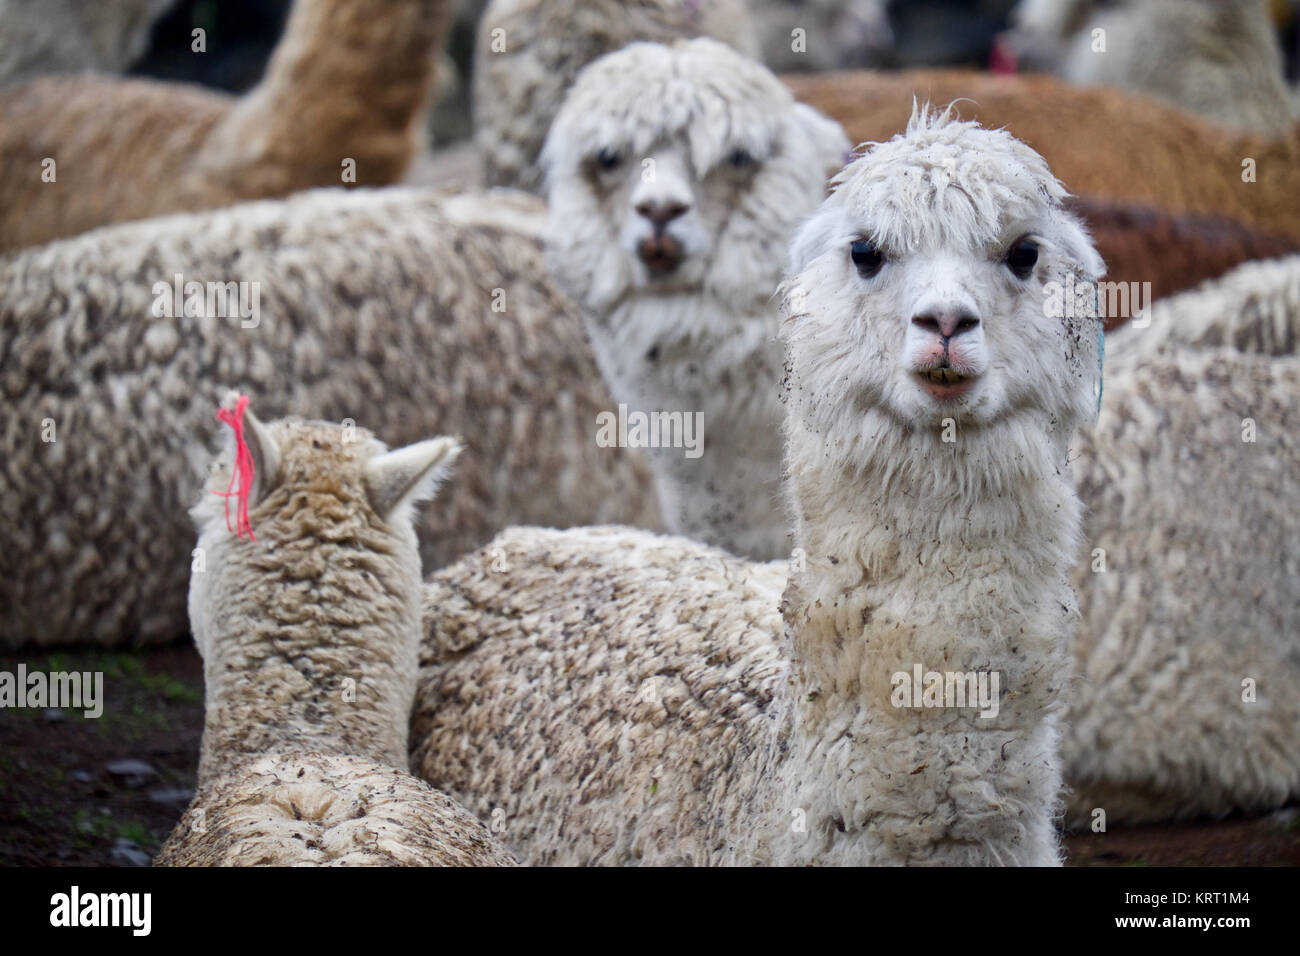 Herd of alpacas in Q'ero village in Andes near Sacred Valley. Q'ero are considered to be spiritual ancestors of Stock Photo